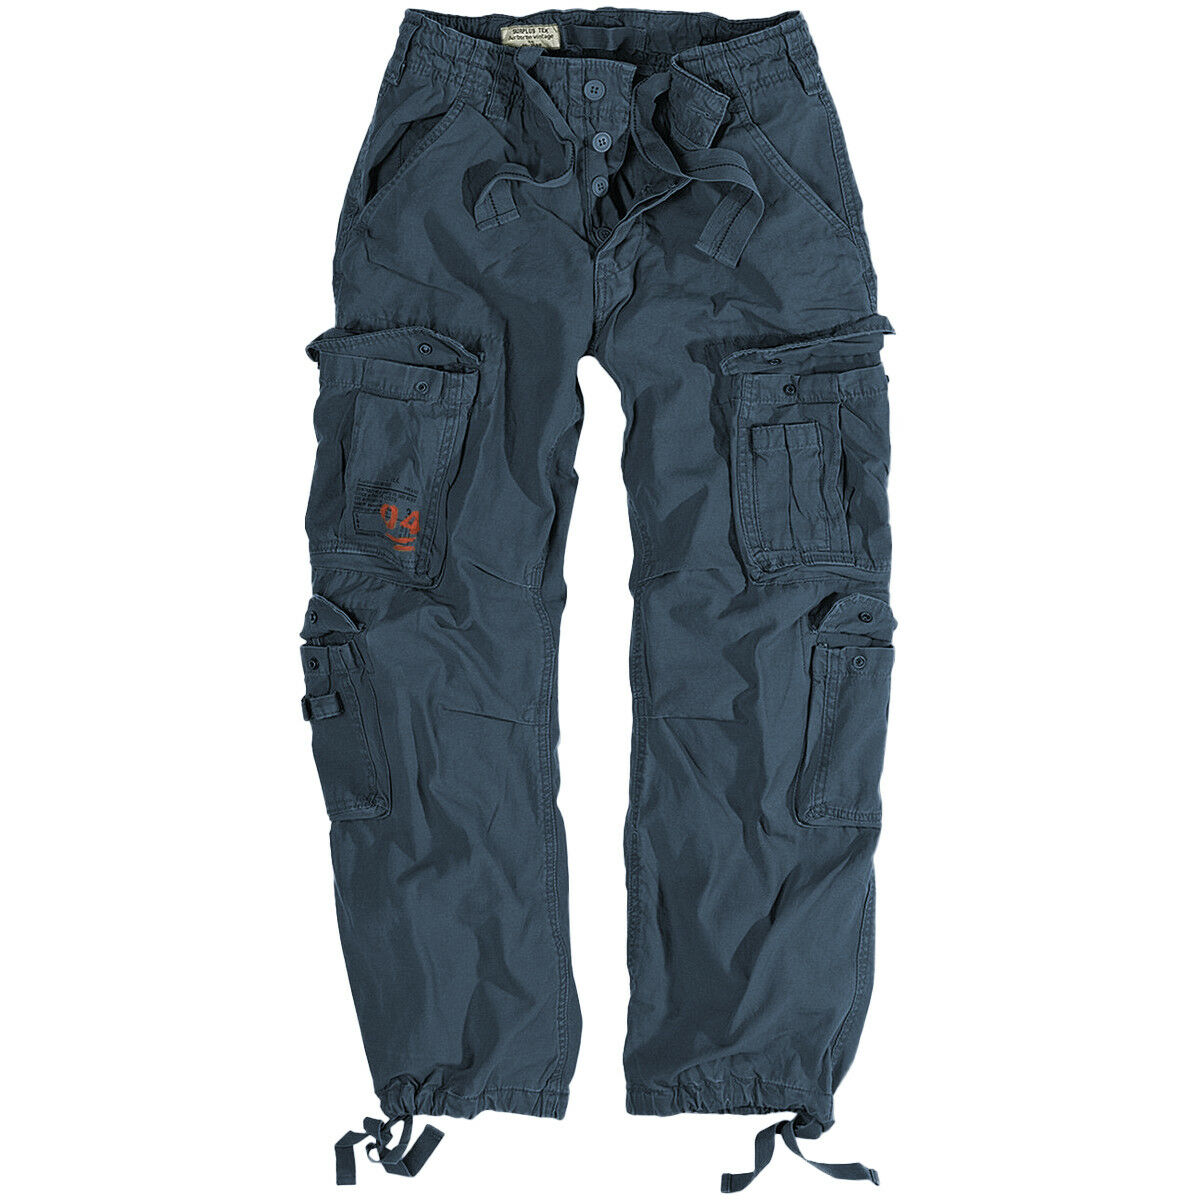 Surplus Airborne Vintage Trousers Mens Army Outdoor Cargo Airsoft Military Navy